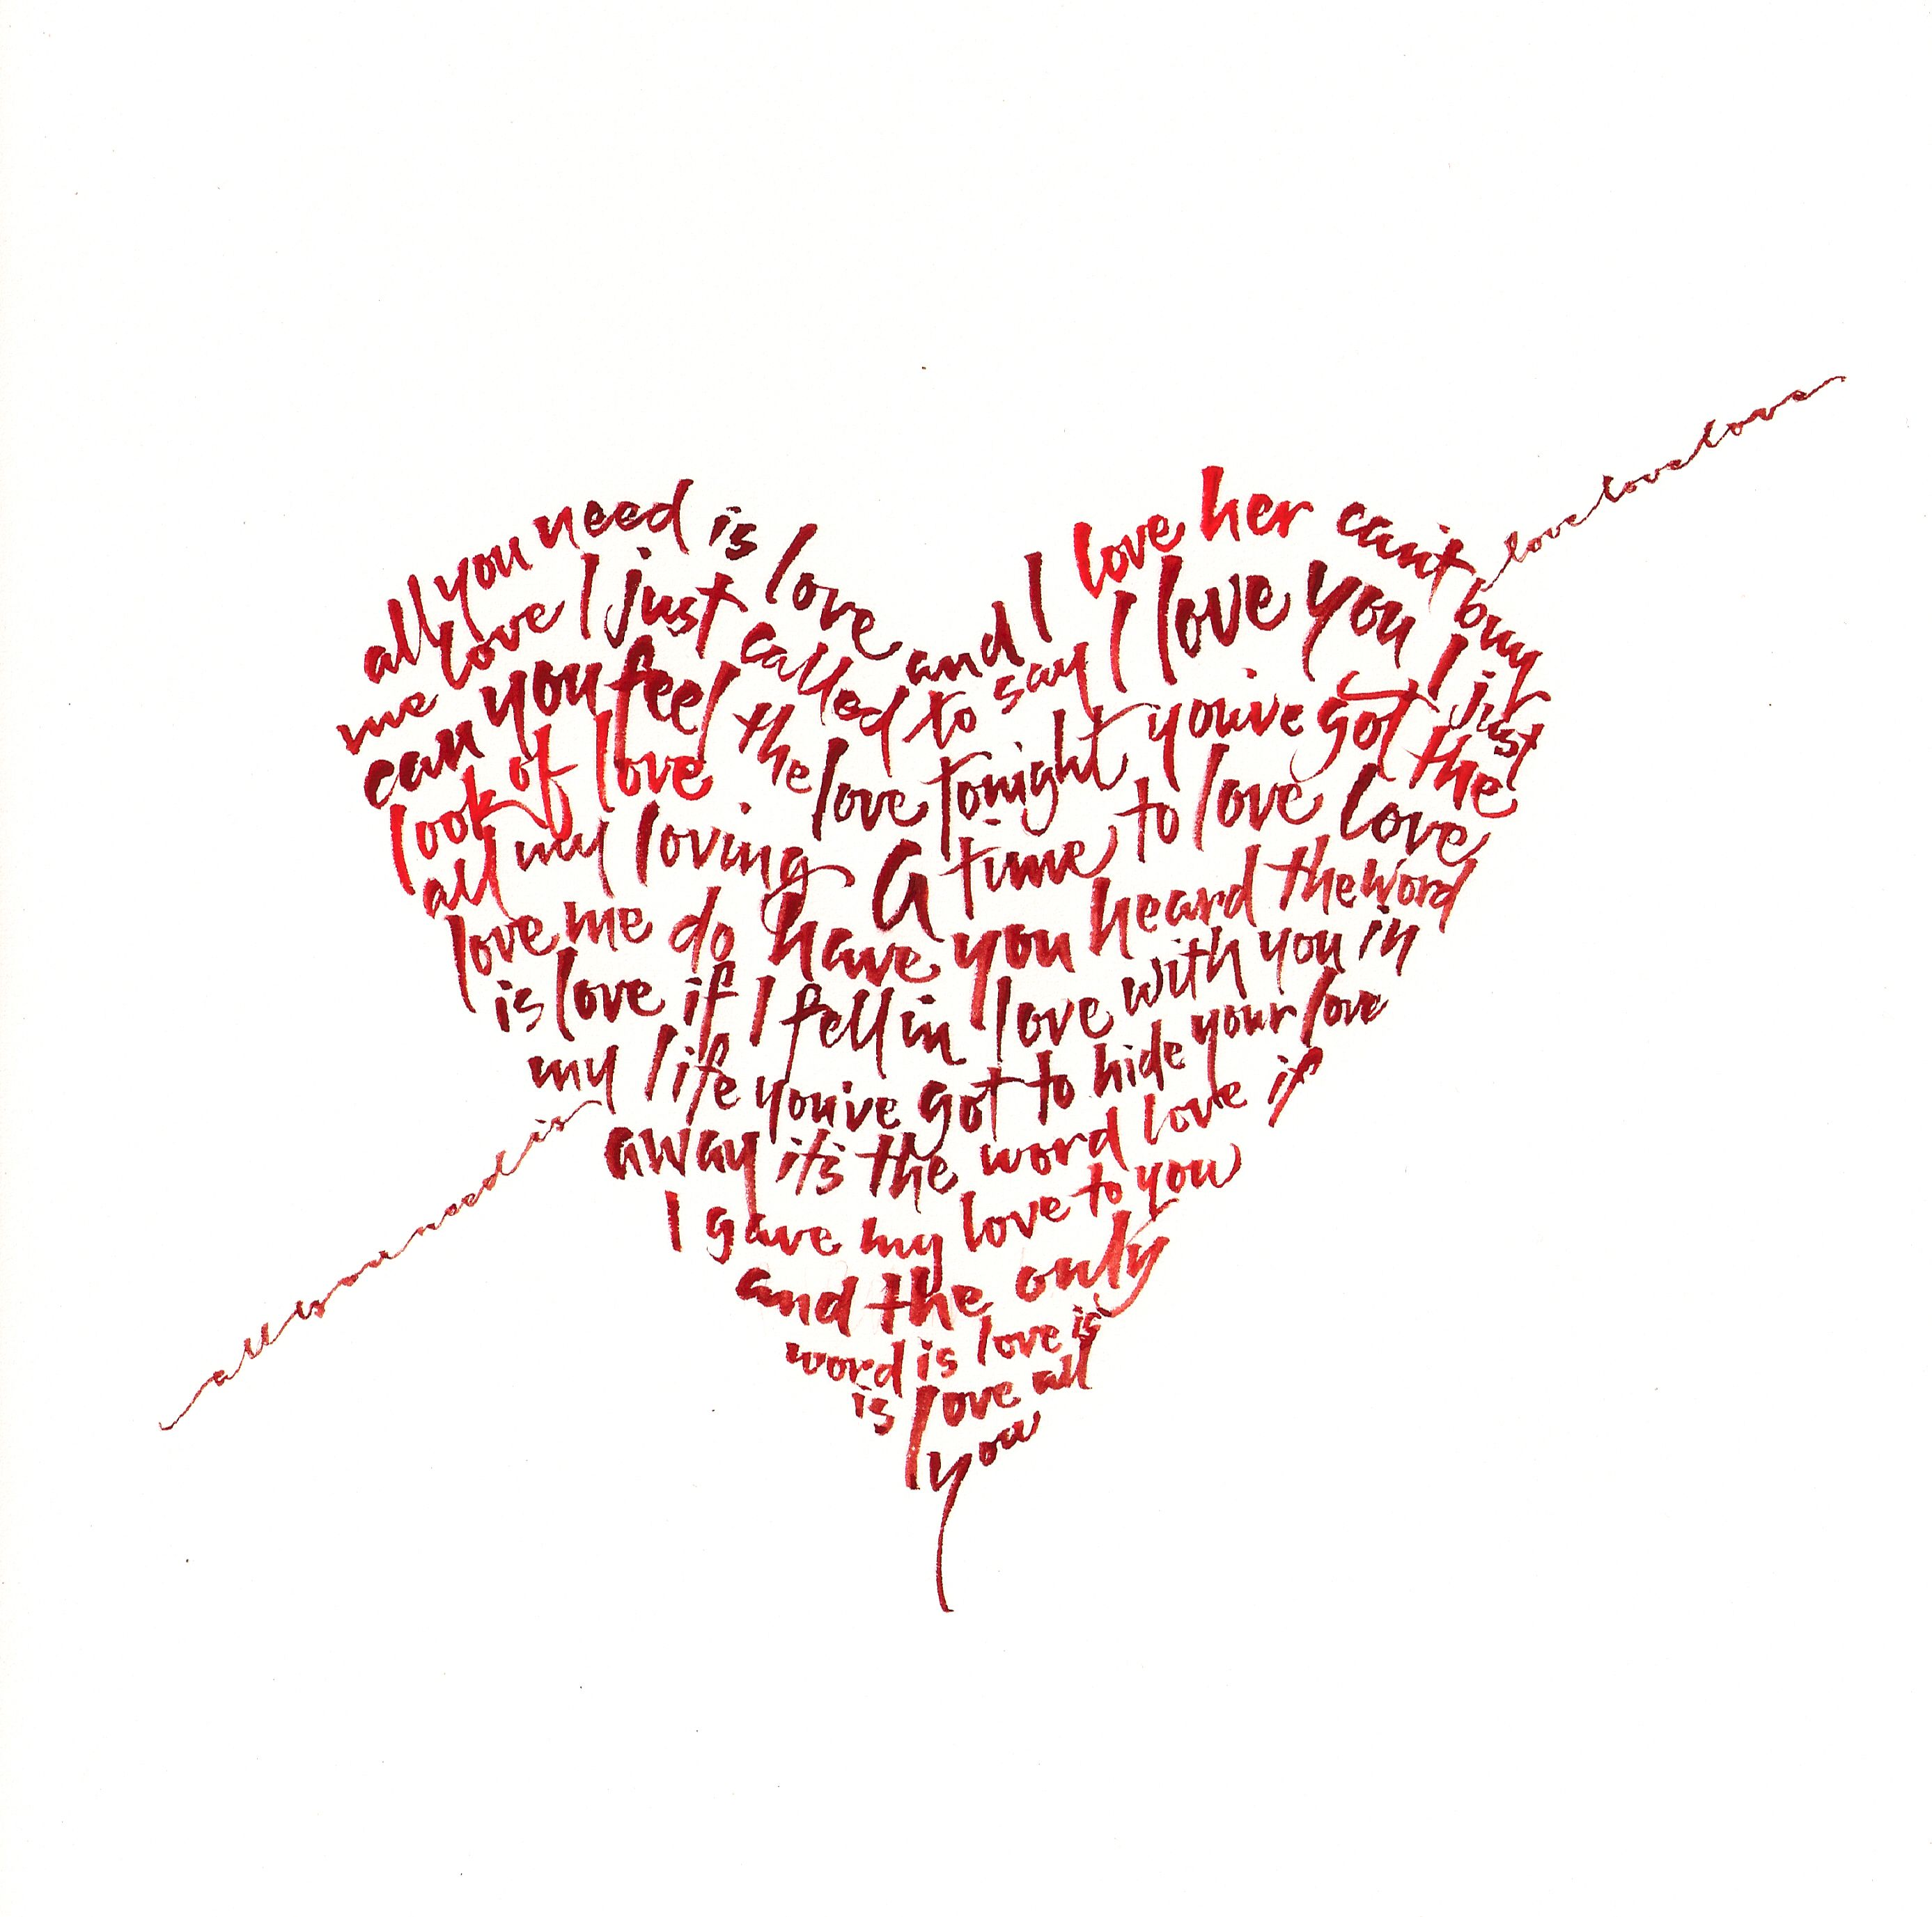 All you need is love… that says it all! Happy Valentines Day!  #happyvalentinesday #february14 #loveisintheair #calligraphy #handlettering #allyouneedislove #oneofakind